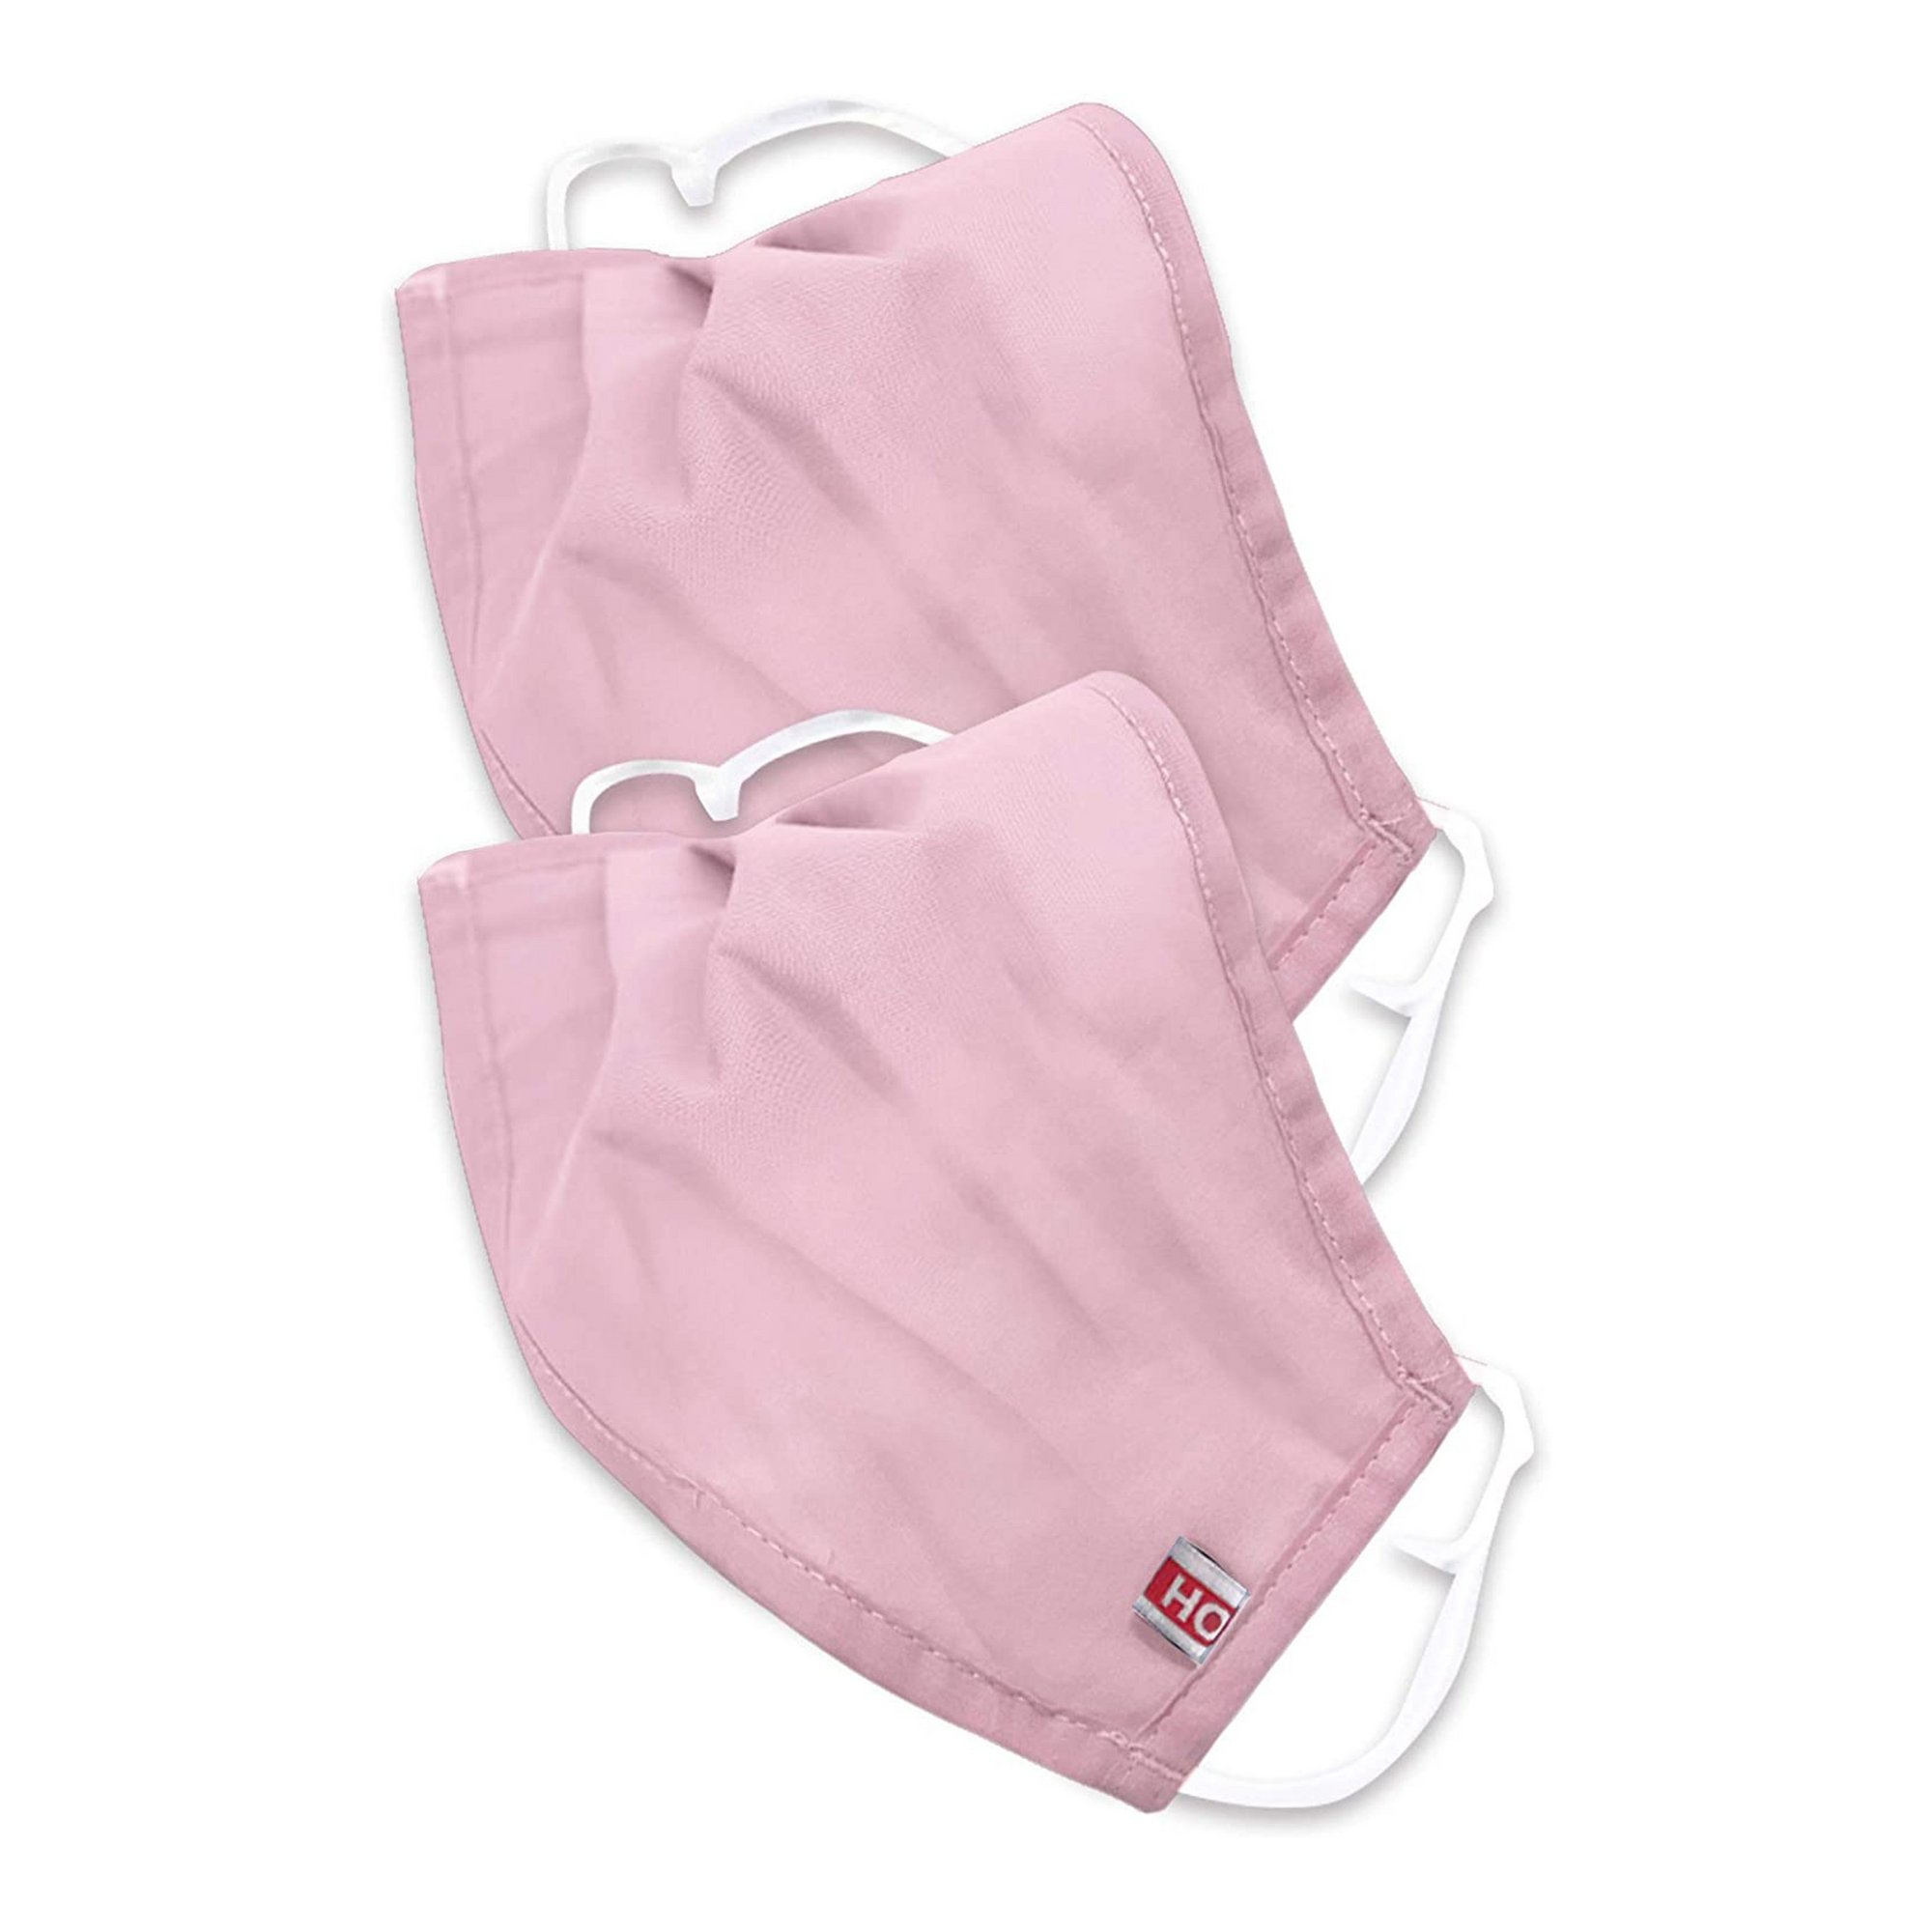 Image of Pack of 2 Pink Childrens Face Mask